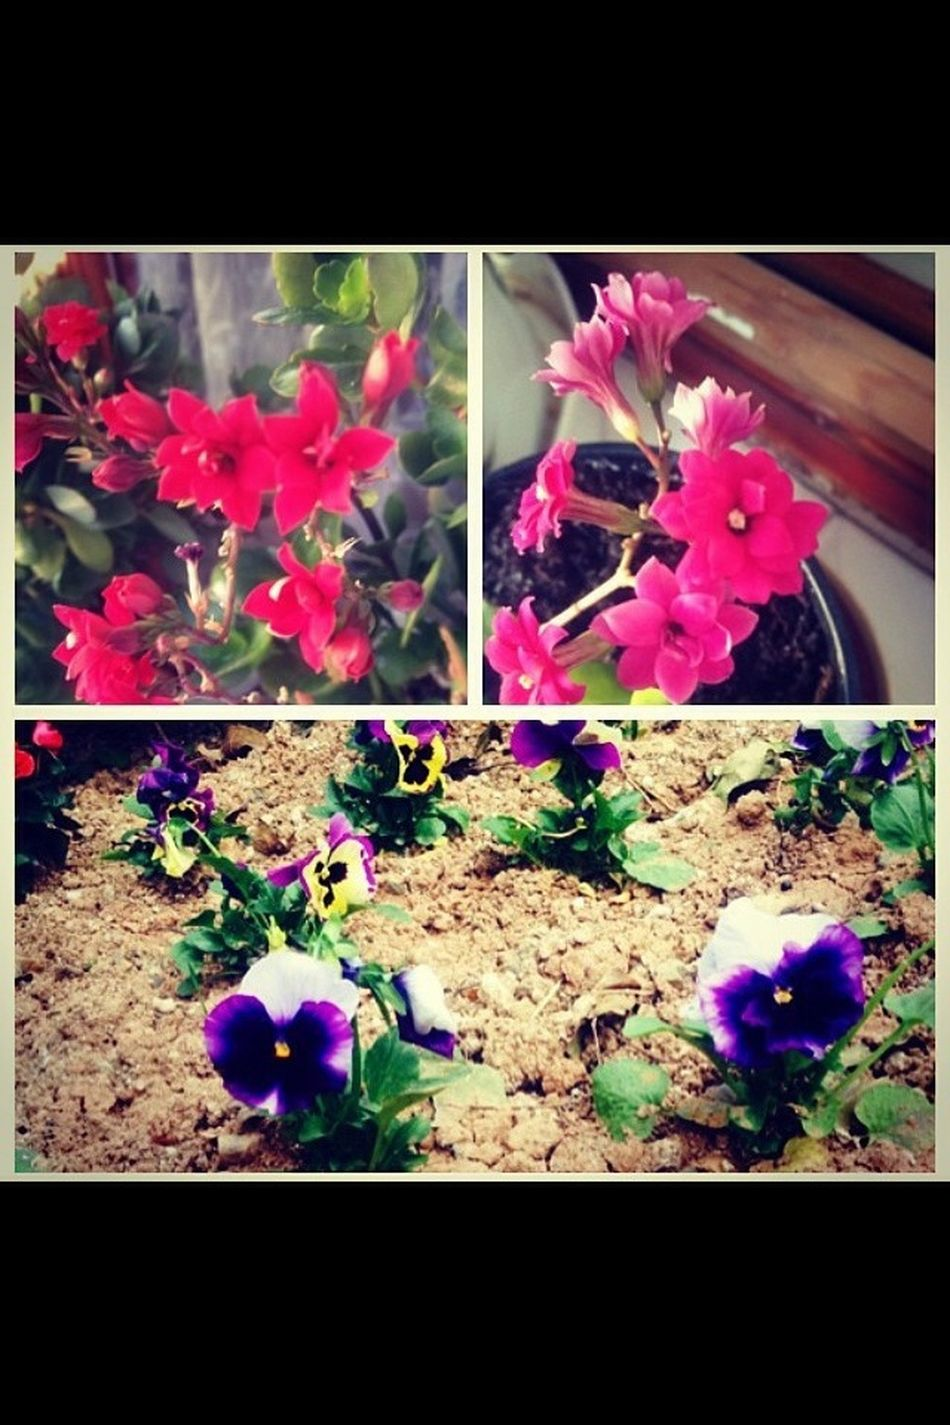 Notfilter Flowers Father Father'sflowers Beauty Colourful Colour Saksı Cute♡ Goodmorning